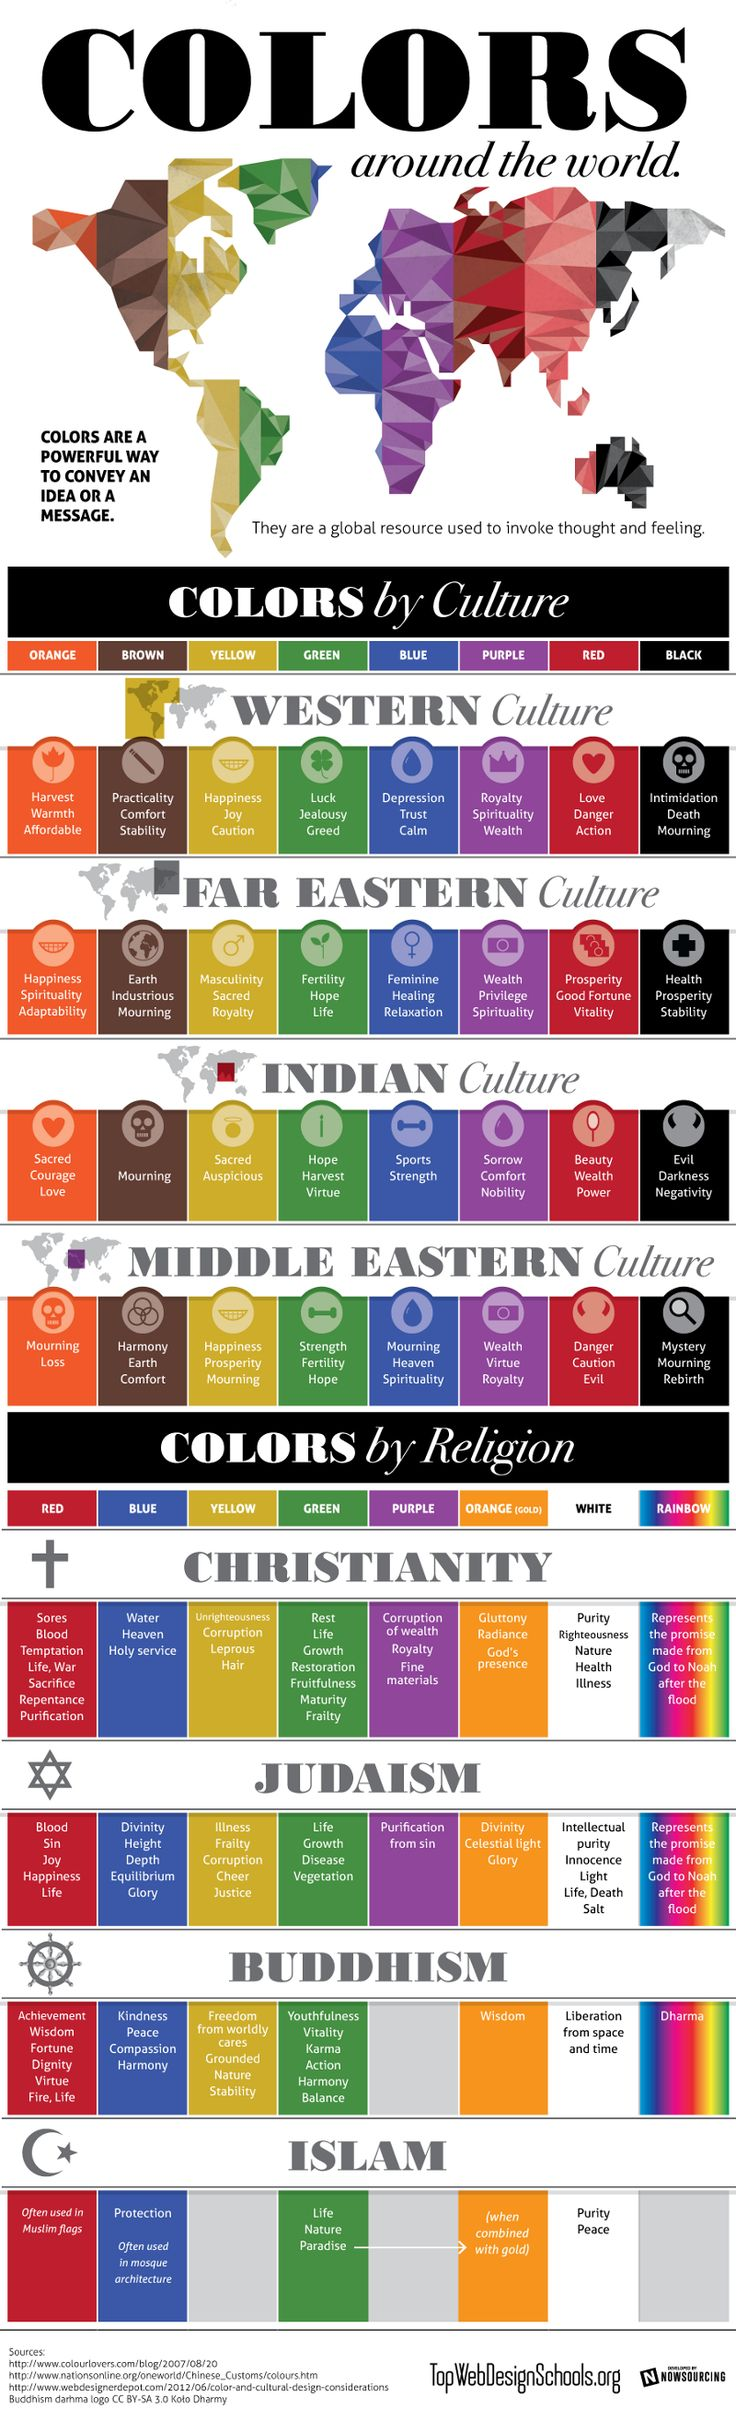 Psychology-Infographic-Colors-mean-different-things-for-different-cultures-and-religious-traditions.-Th Psychology Infographic : Colors mean different things for different cultures and religious traditions. Th...